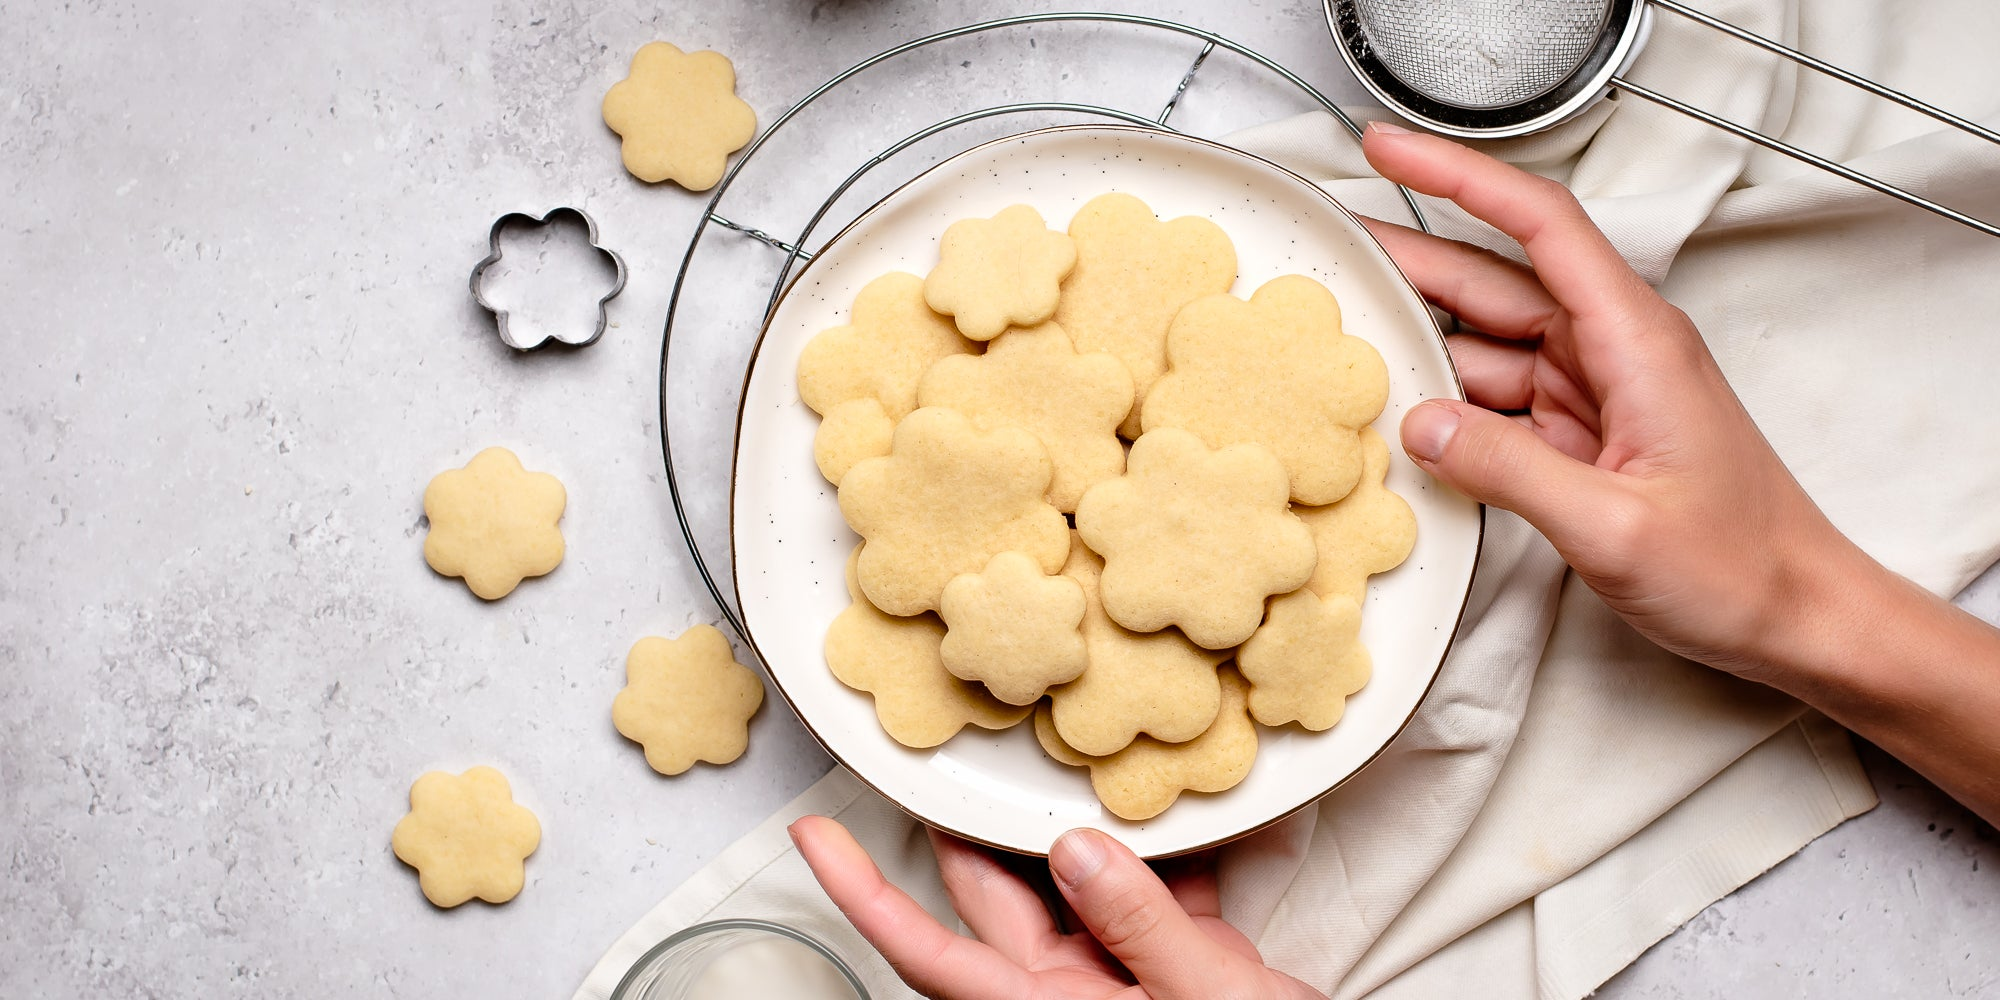 Hands holding a plate of biscuits baked with the Basic Biscuit Dough recipe next to biscuit cutters and a sieve